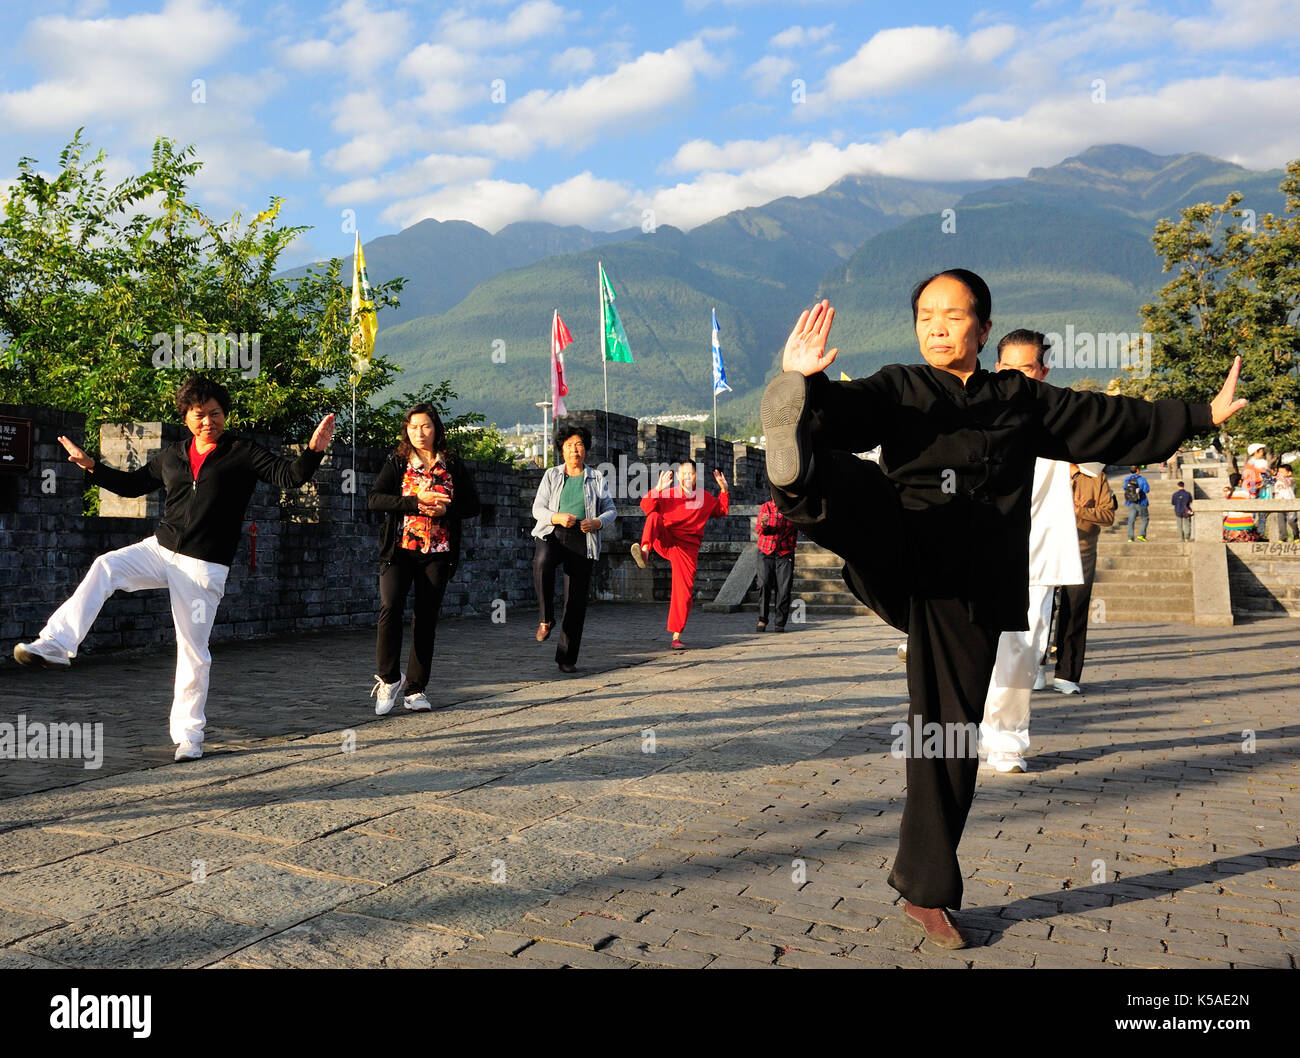 Dali,China - Oct 6,2014:People practice tai chi at Dali ancient town in Yunnan province of China. - Stock Image